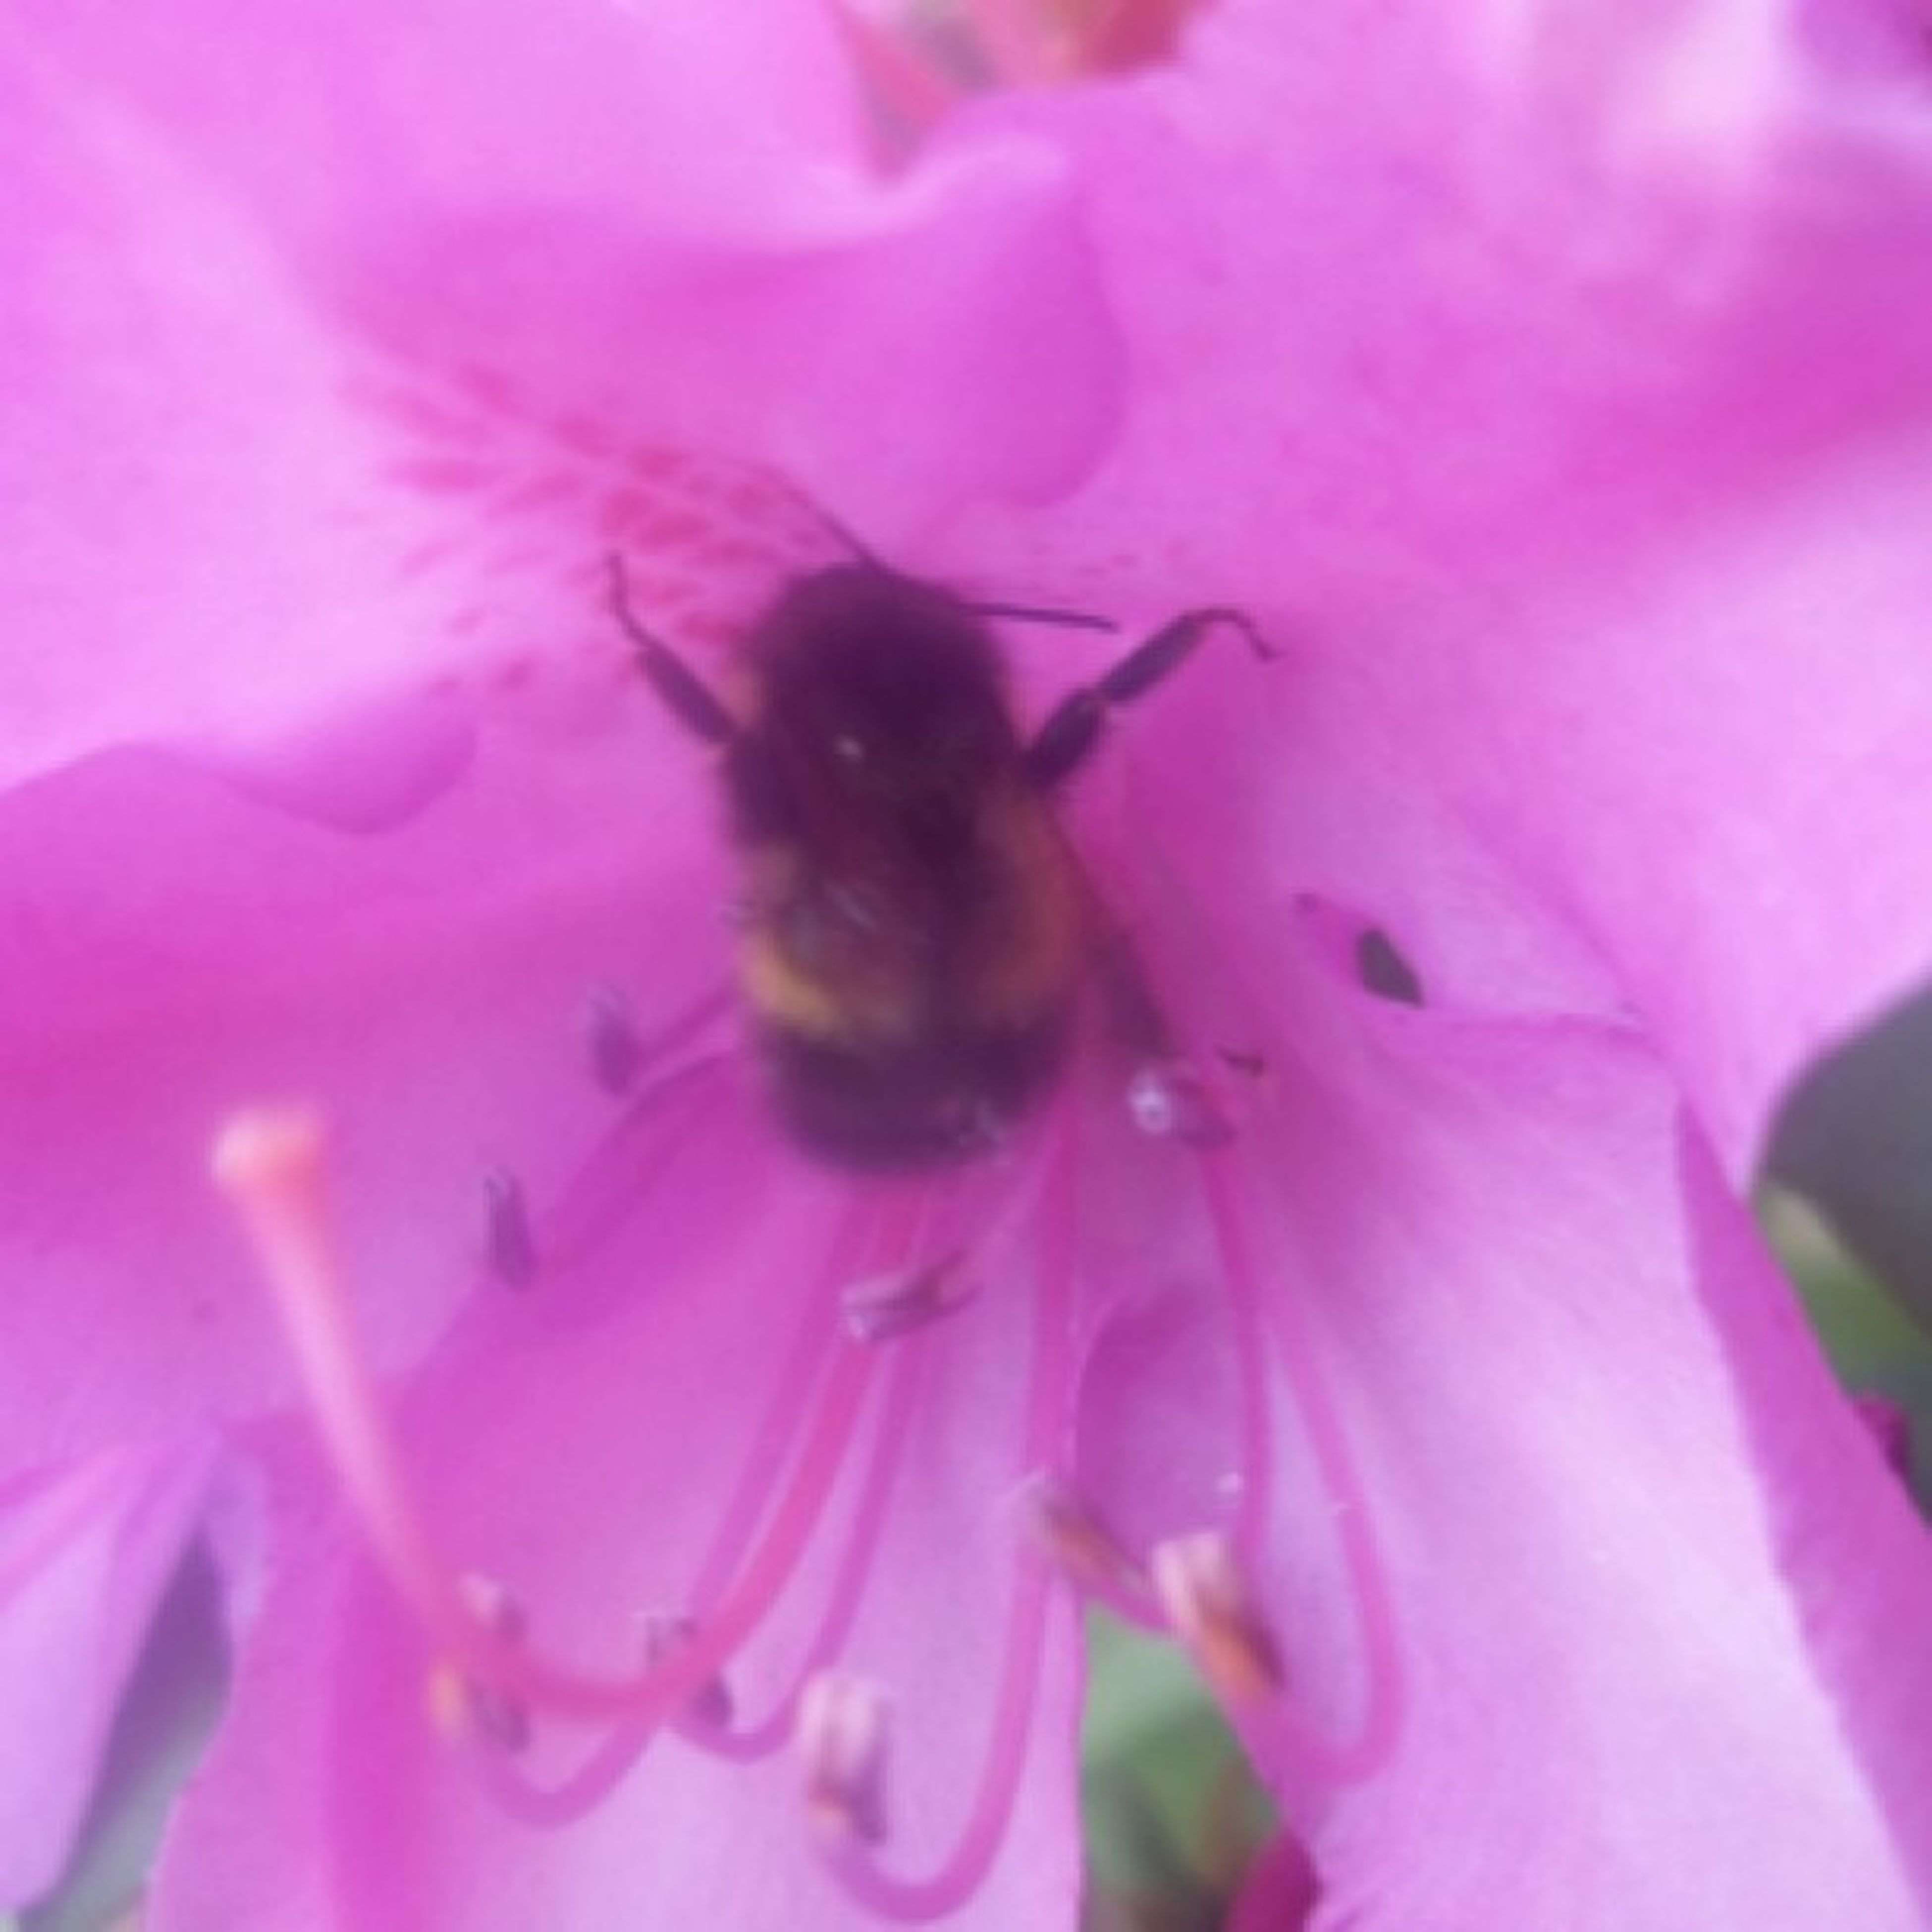 flower, one animal, petal, insect, animal themes, flower head, fragility, freshness, wildlife, animals in the wild, close-up, beauty in nature, pink color, bee, growth, pollen, nature, pollination, selective focus, single flower